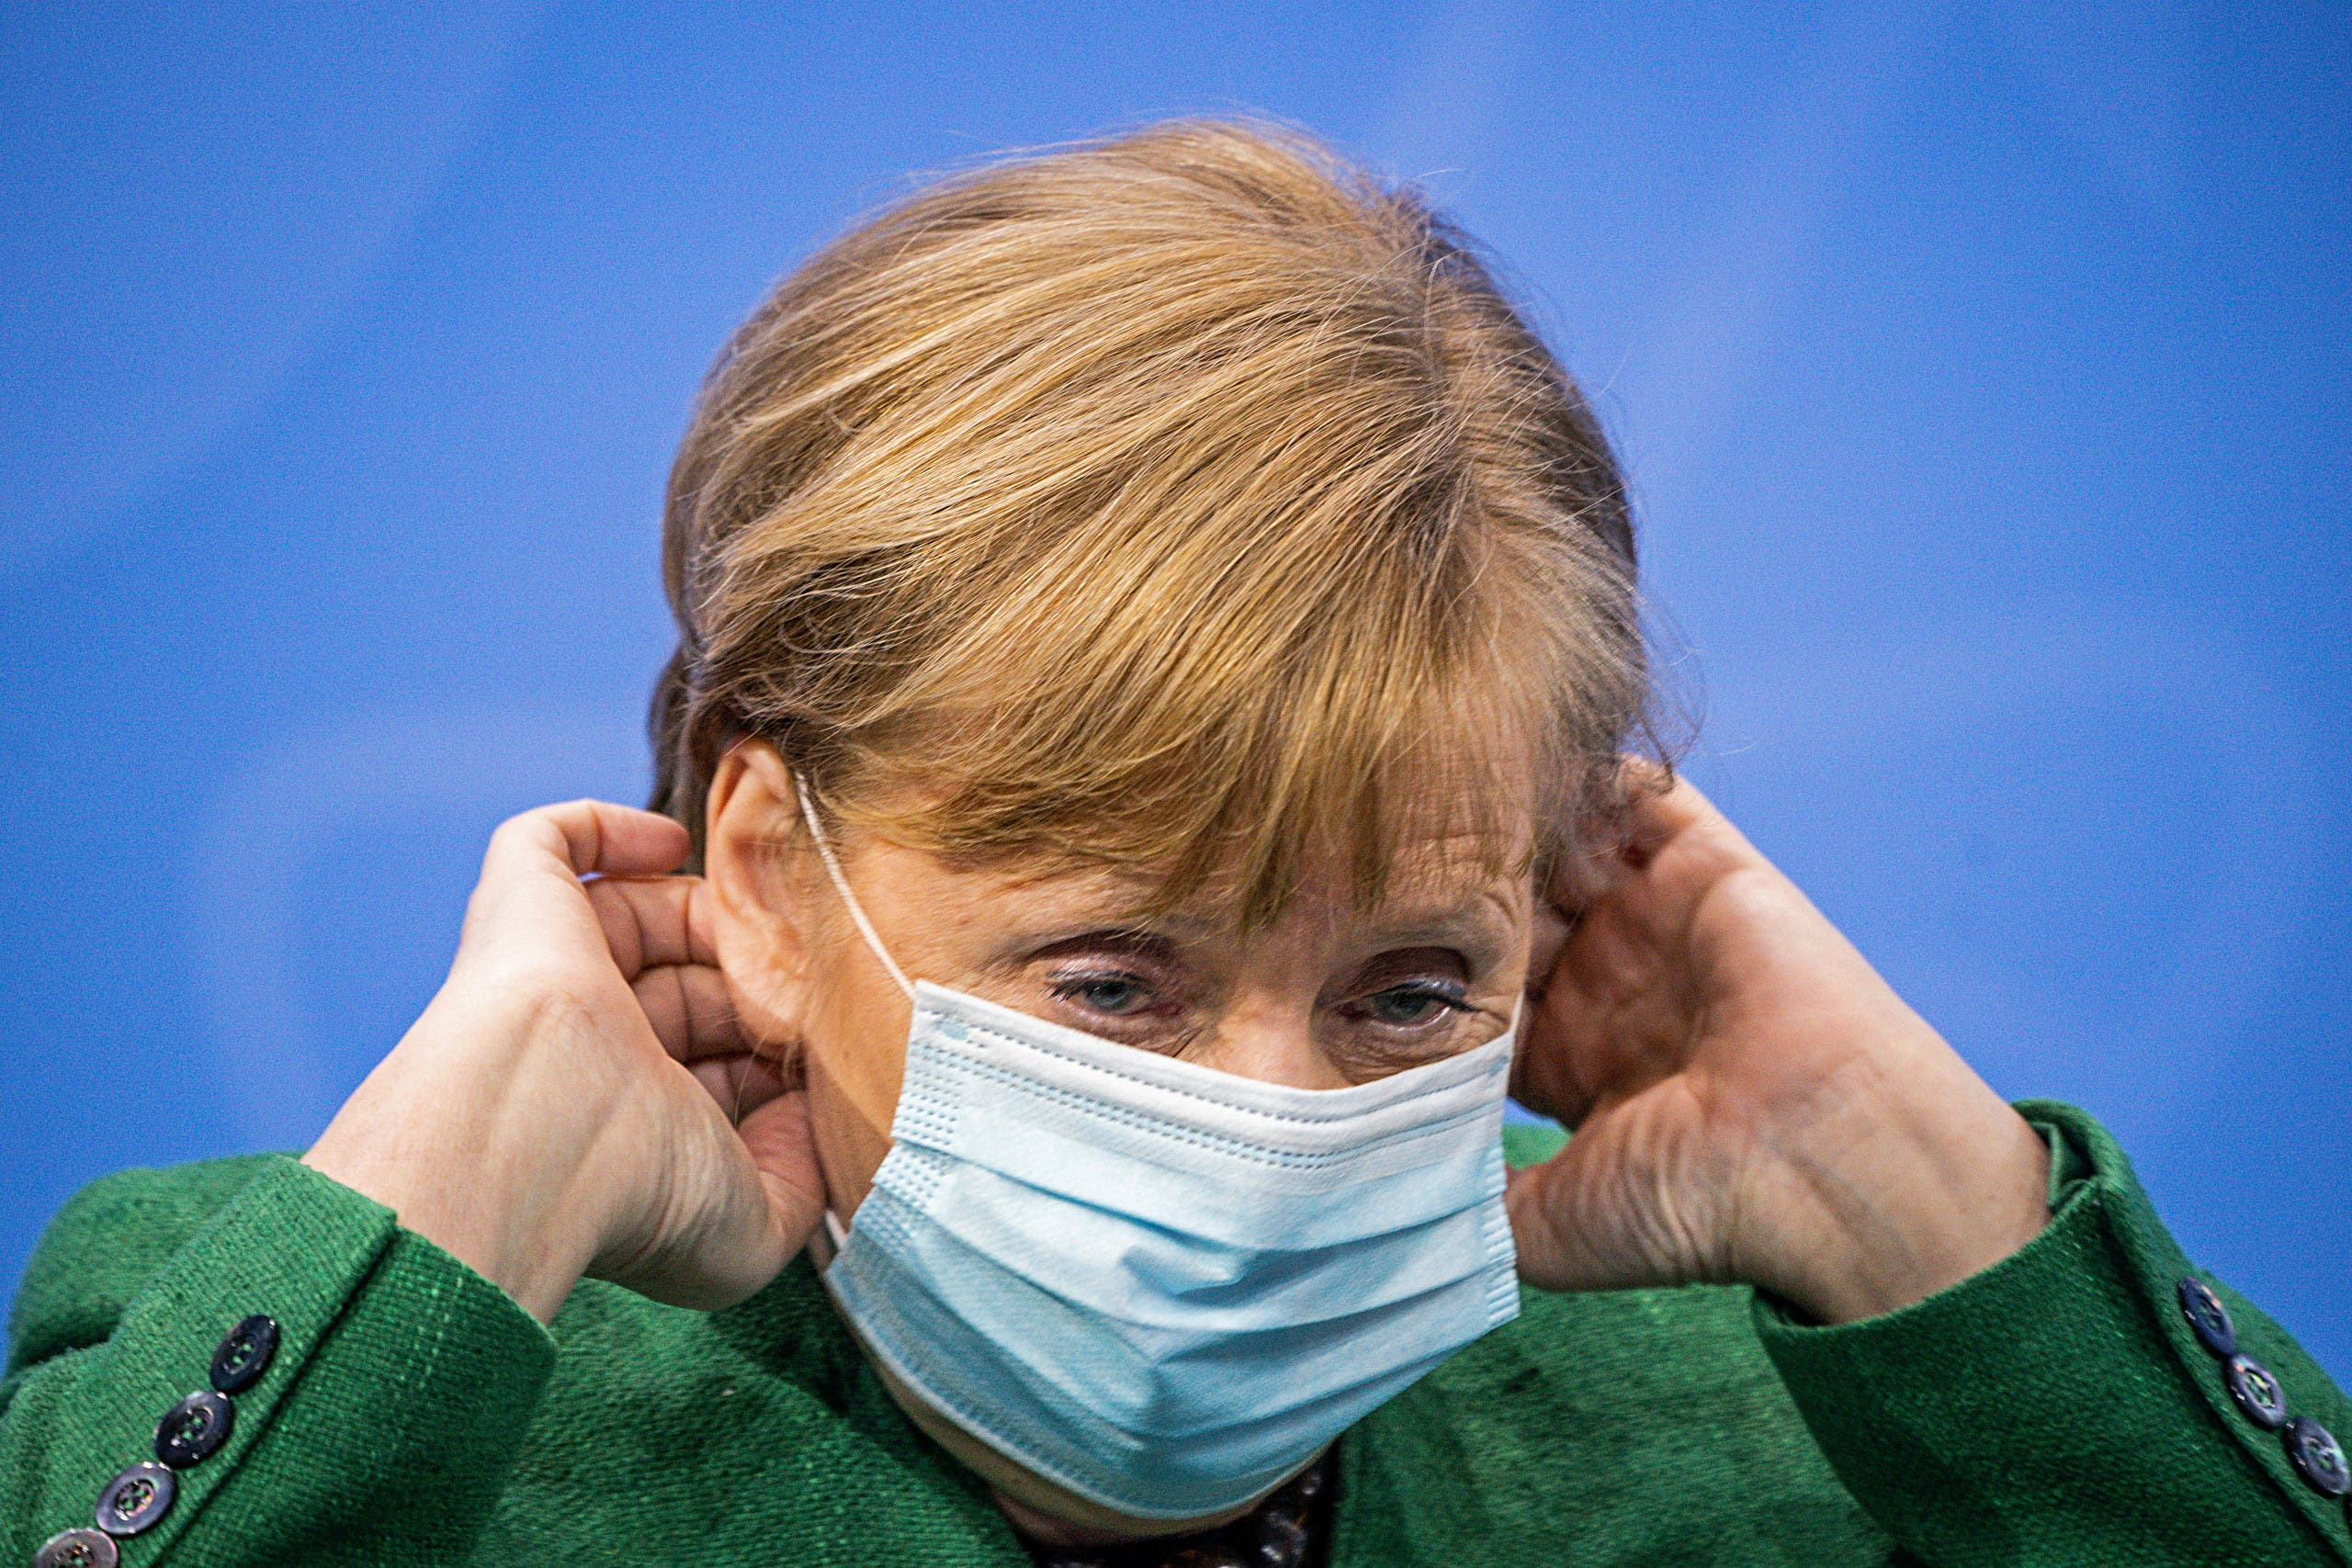 German Chancellor Angela Merkel holds her mask during a news conference after a meeting with state leaders to discuss options beyond the end of the pandemic lockdown, amid the outbreak of the coronavirus disease (COVID-19), in Berlin, Germany, March 23, 2021. (File photo: Reuetrs)